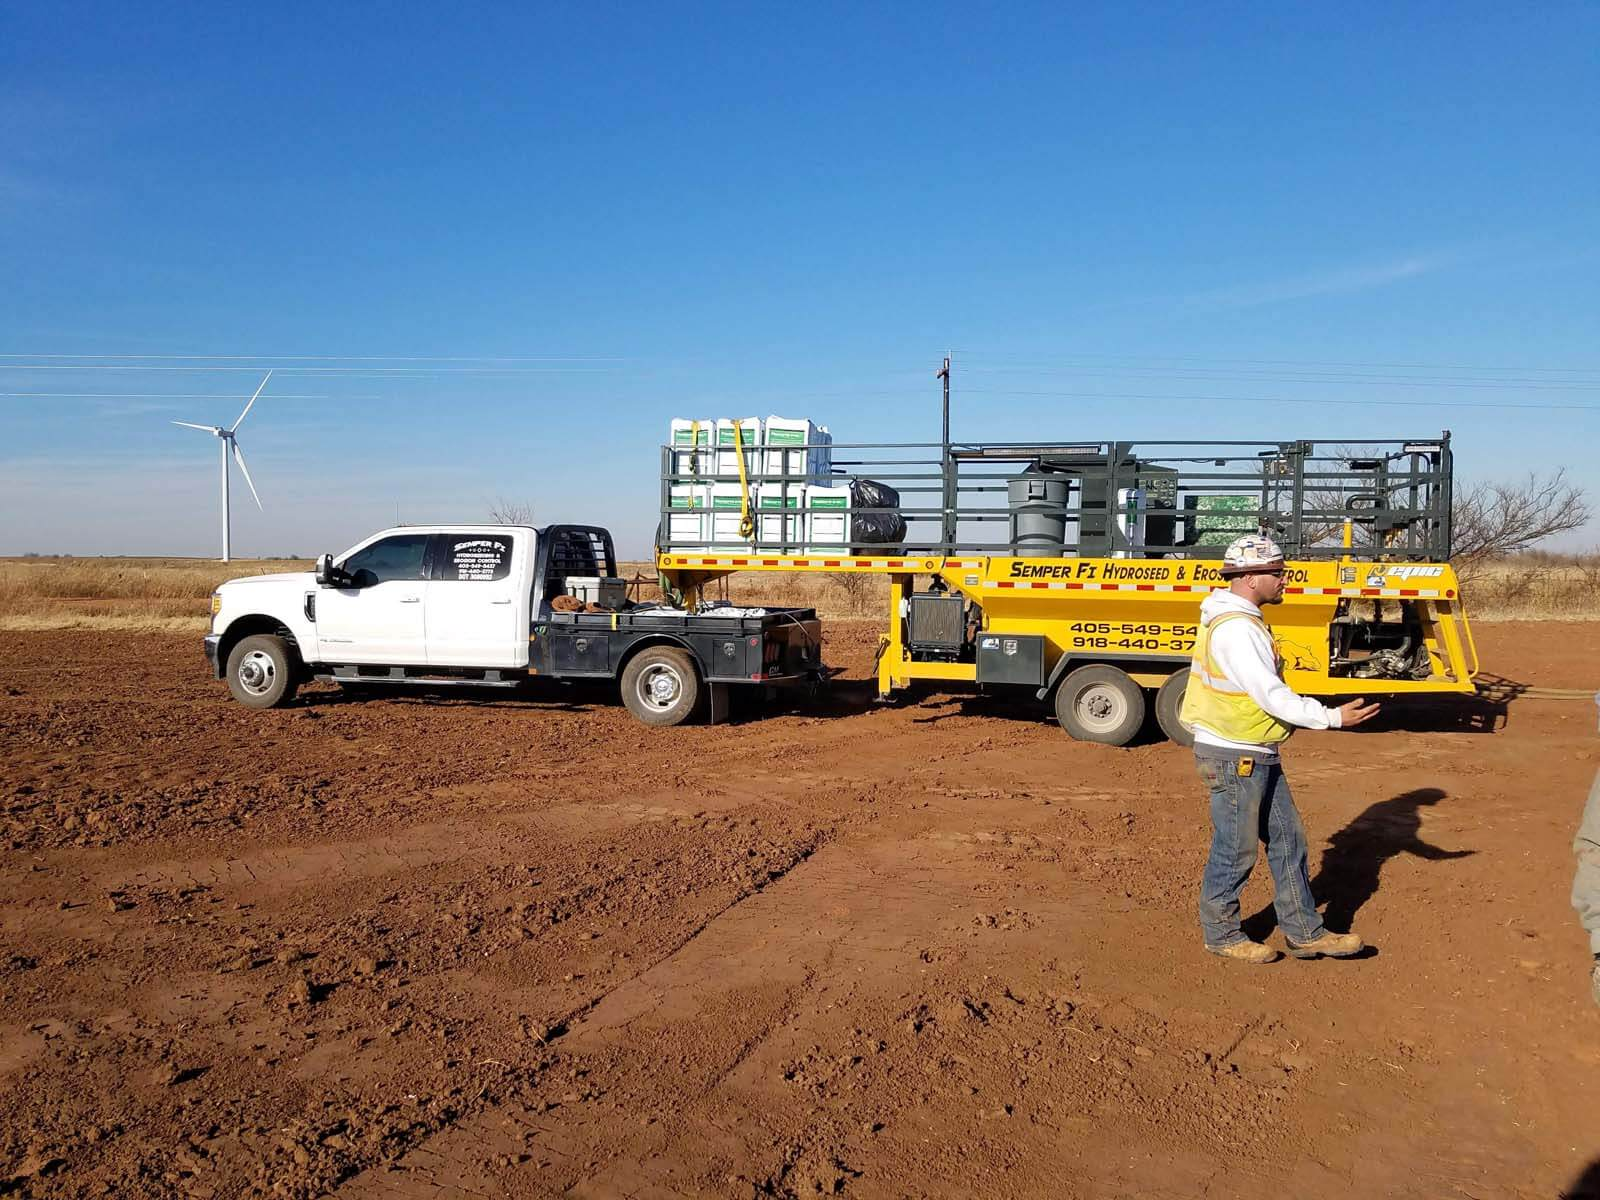 Semper Fi Hydroseed preparing to apply hydroseed at a wind farm.